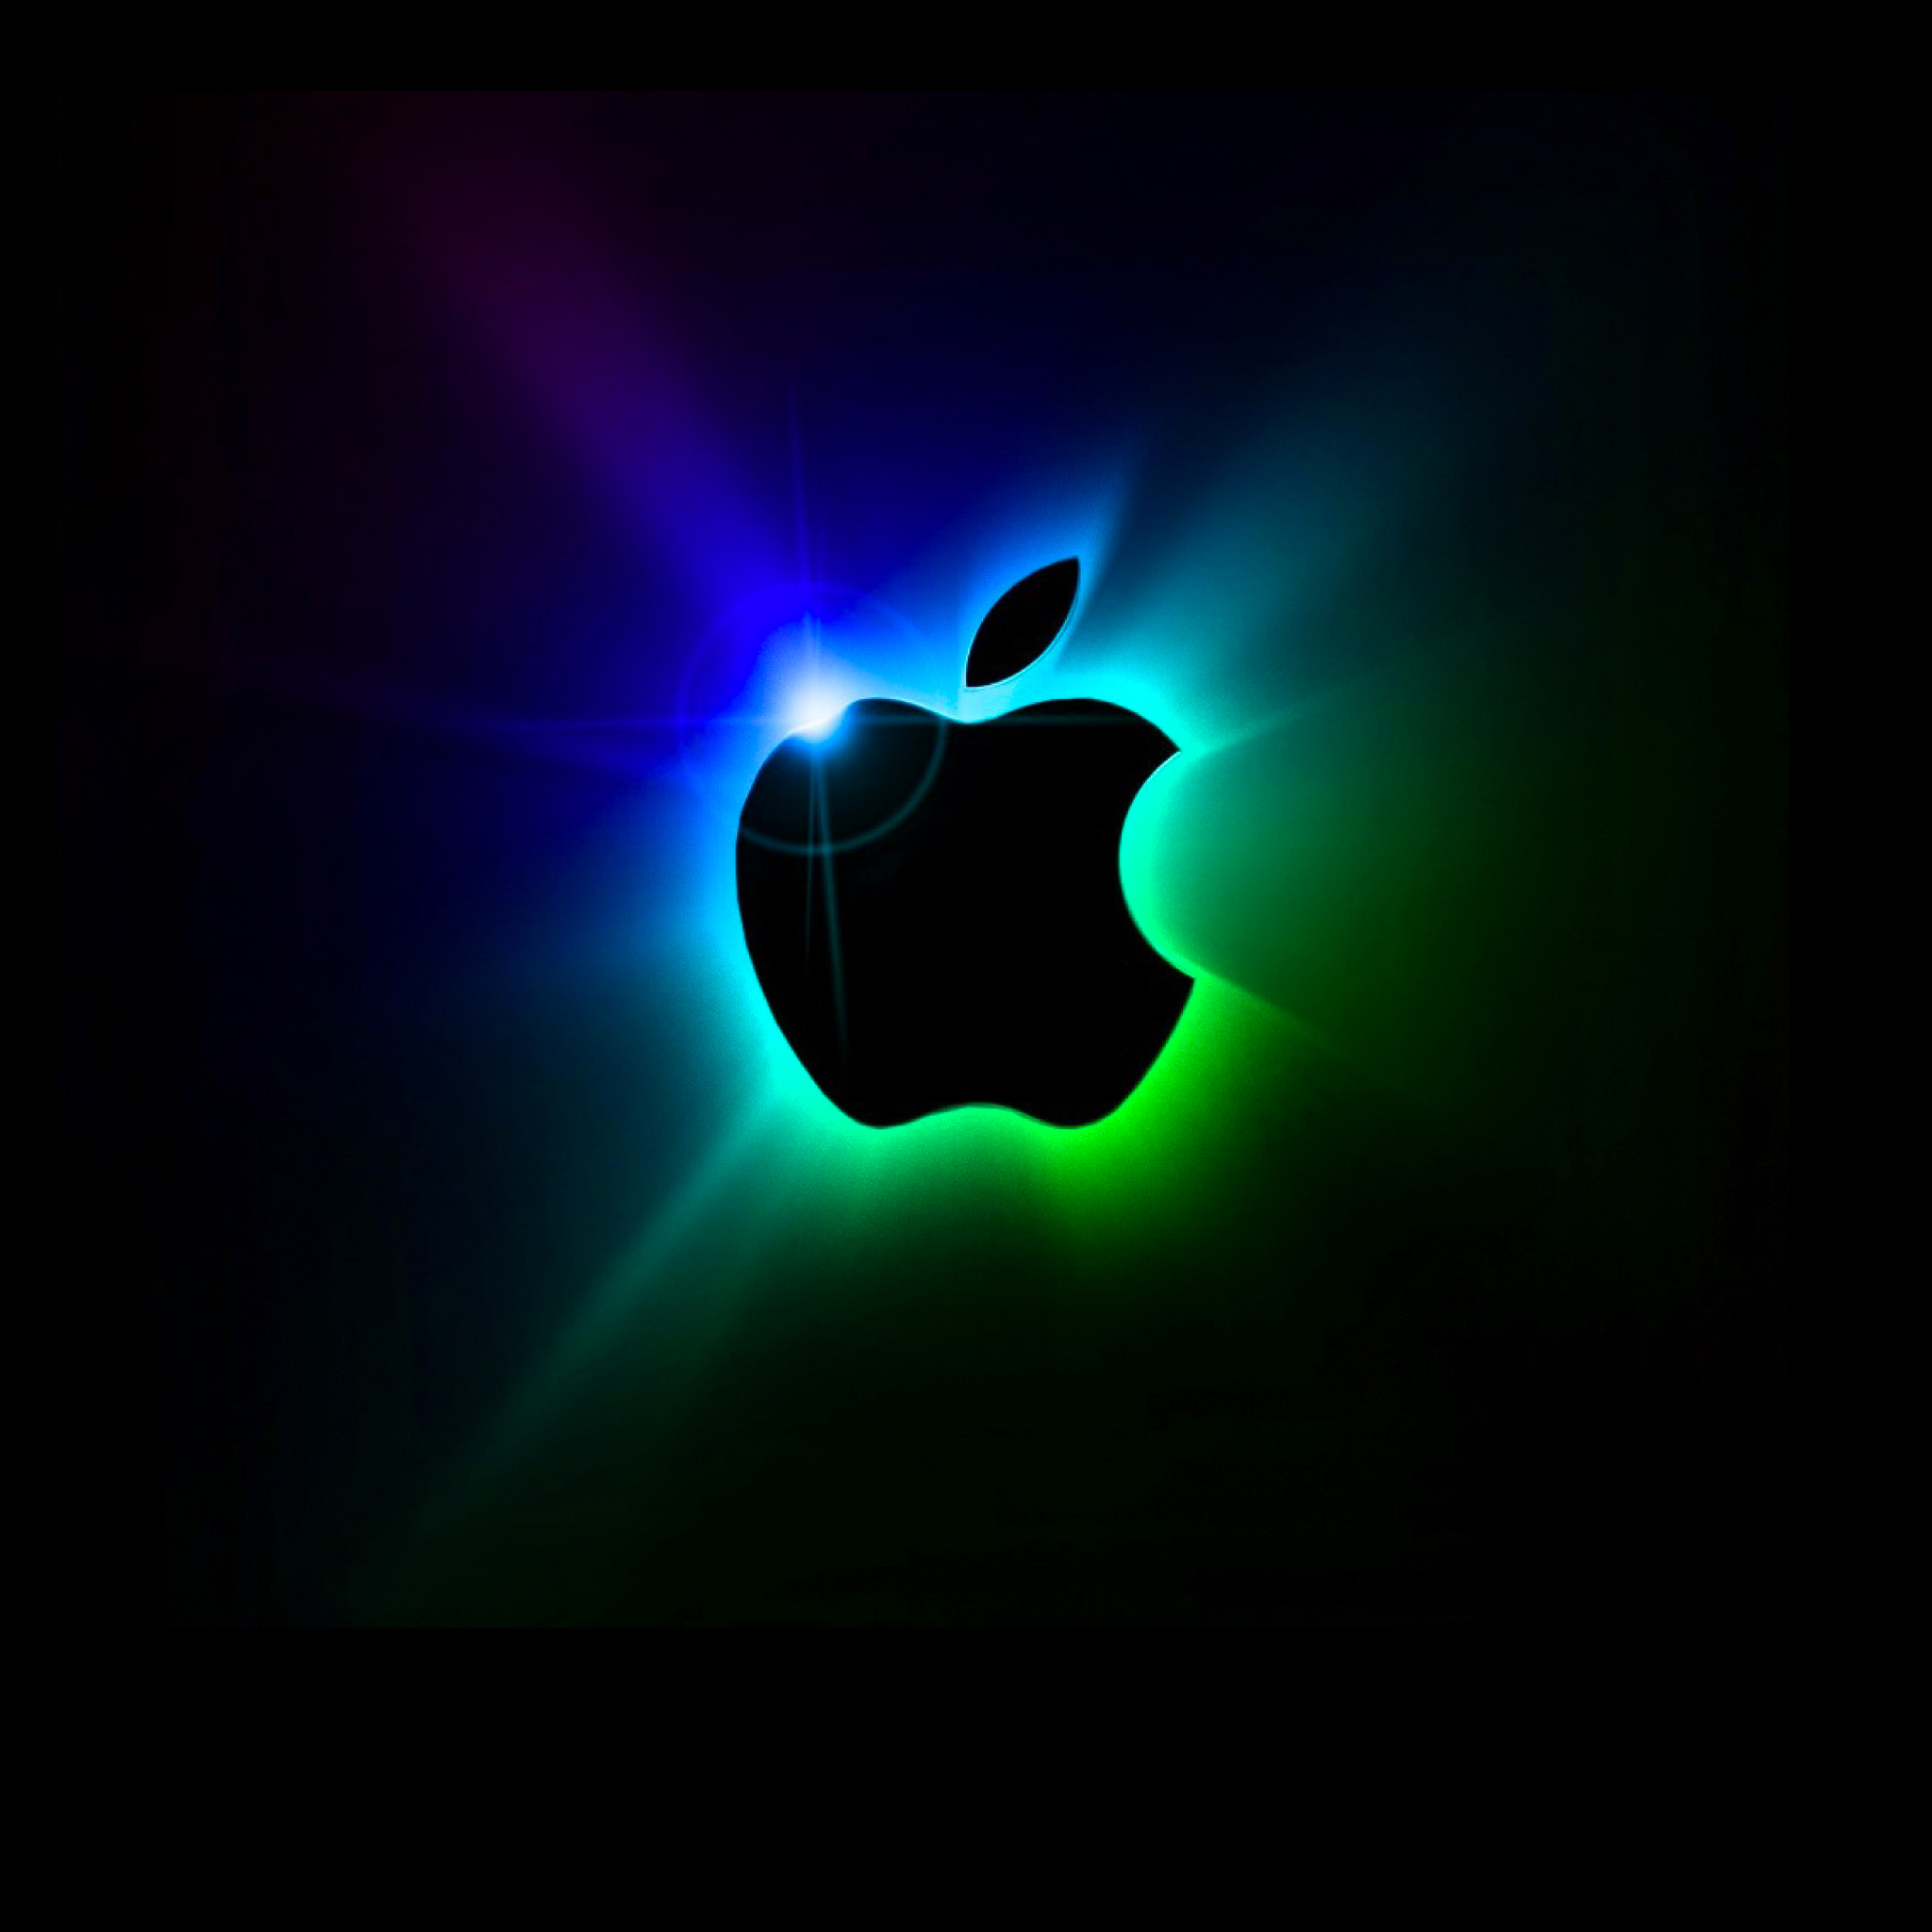 Apple_shadow_3Wallpapers_iPad